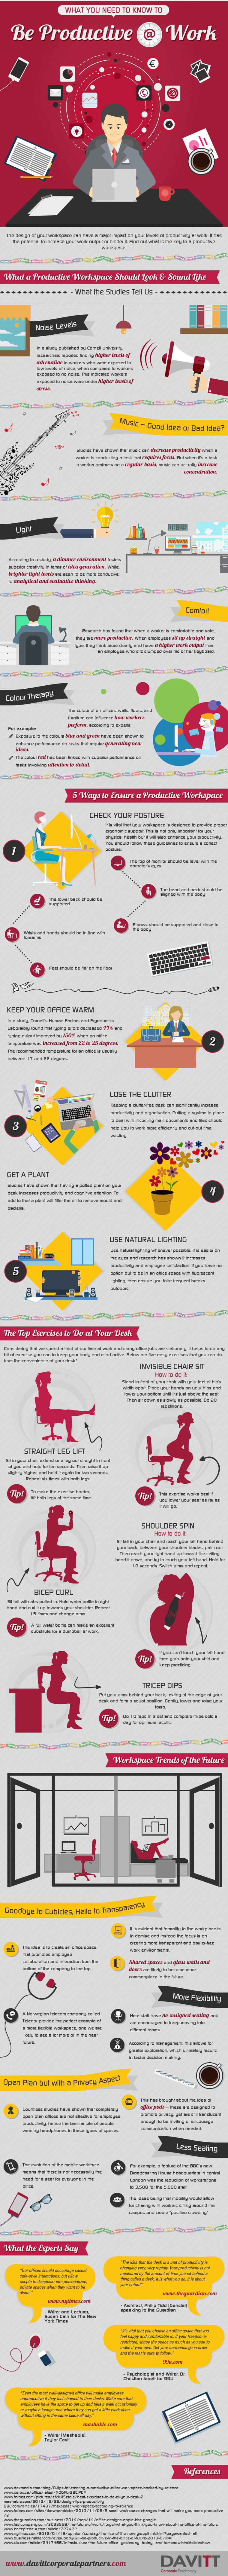 How to be productive at work - infographic